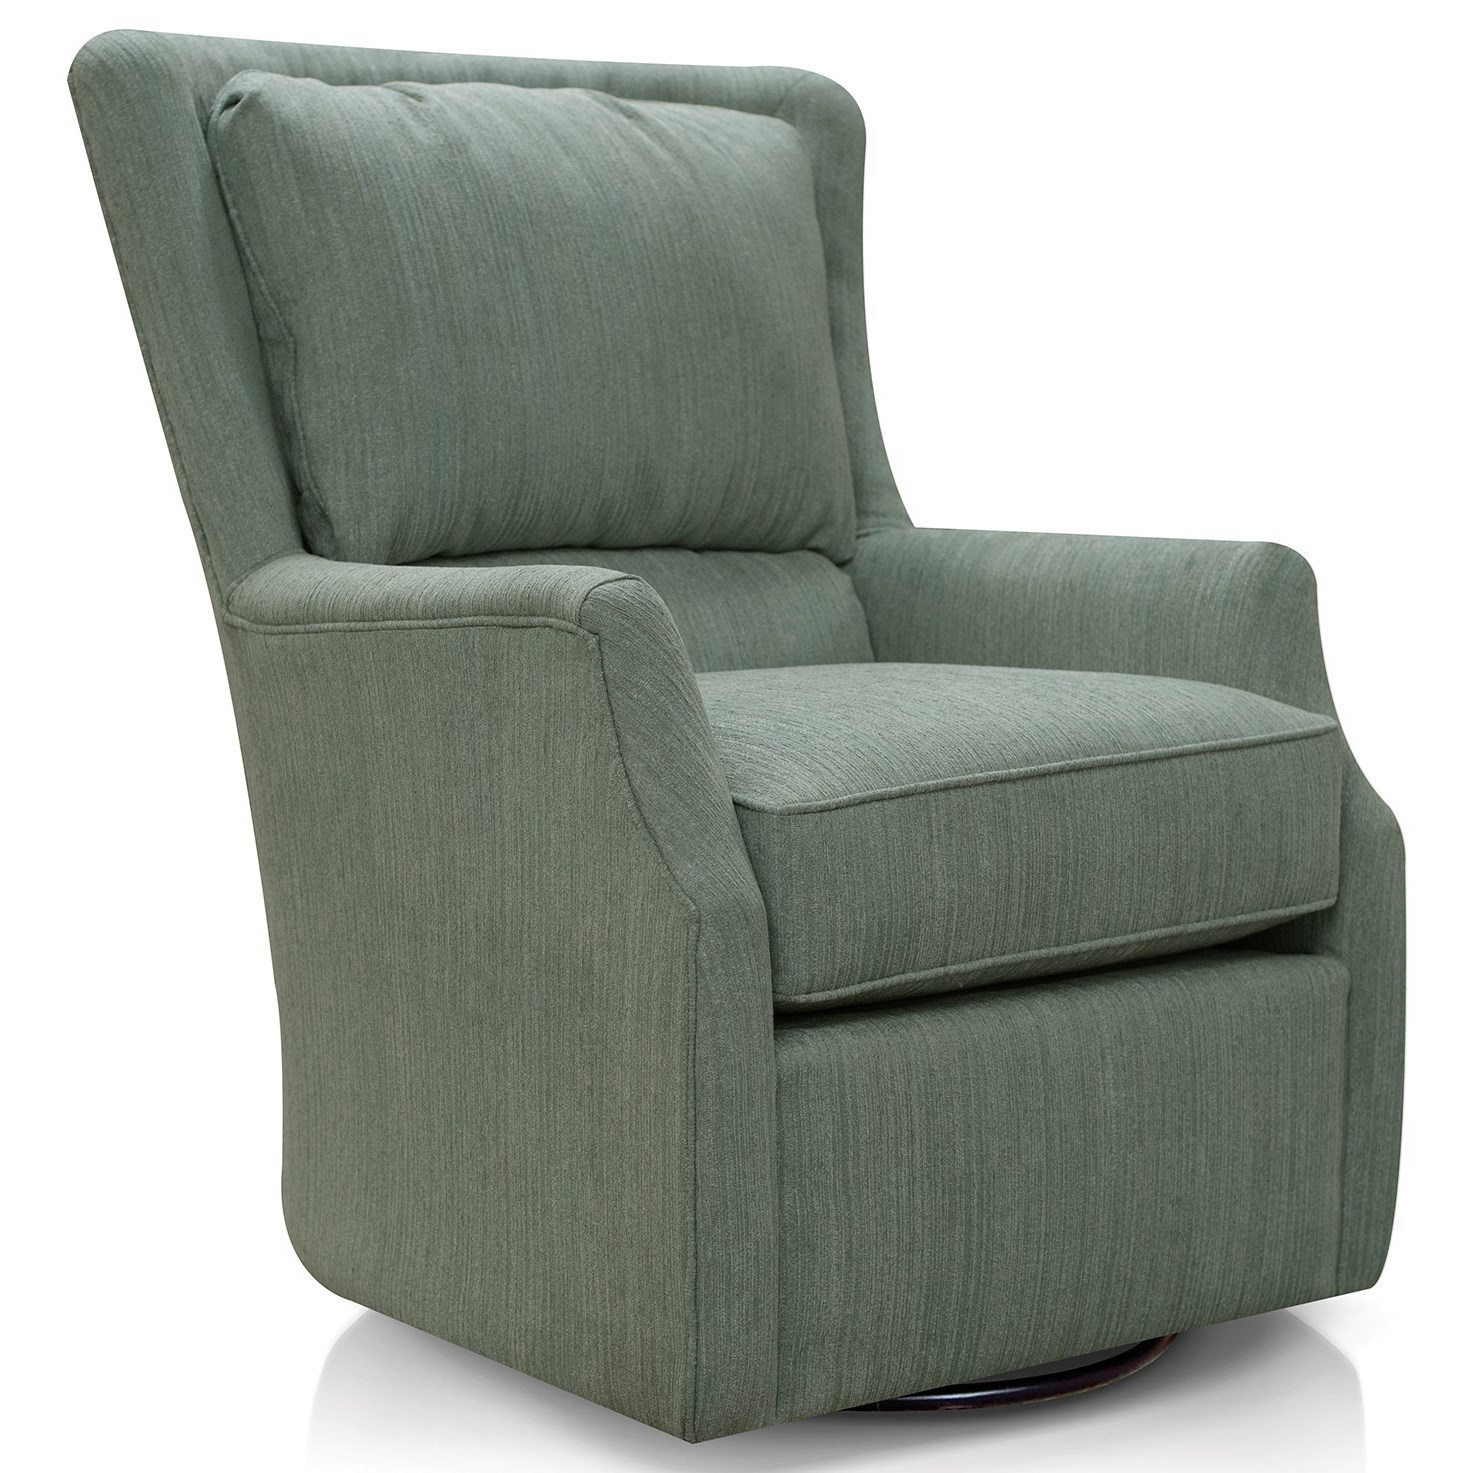 Plush Chairs Loren Swivel Chair By England At Novello Home Furnishings